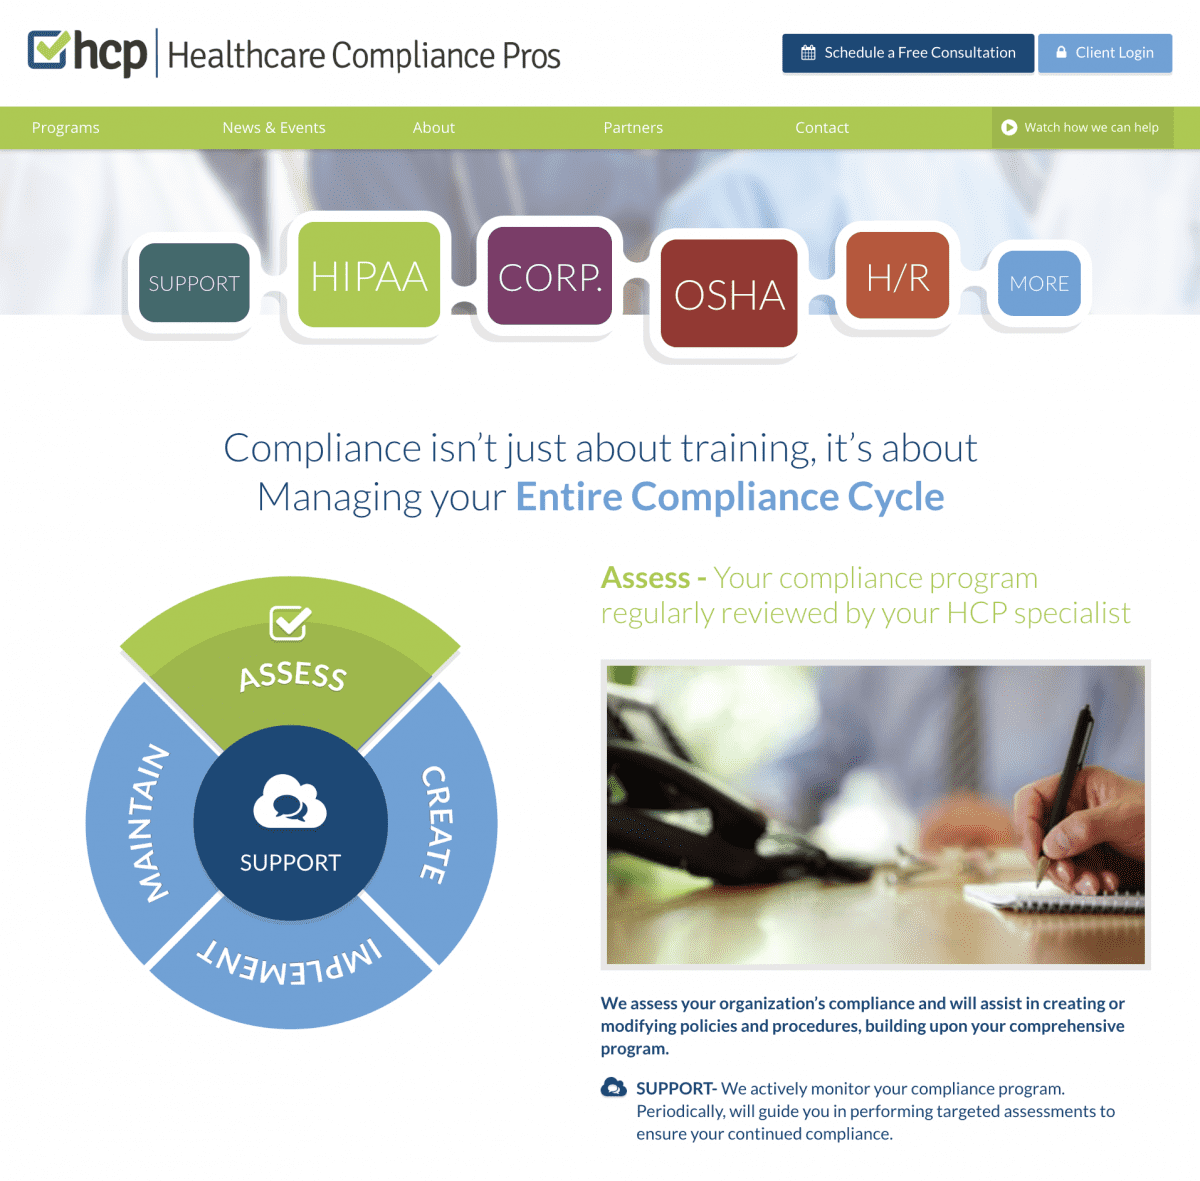 Image of website for Healthcare Compliance Pros